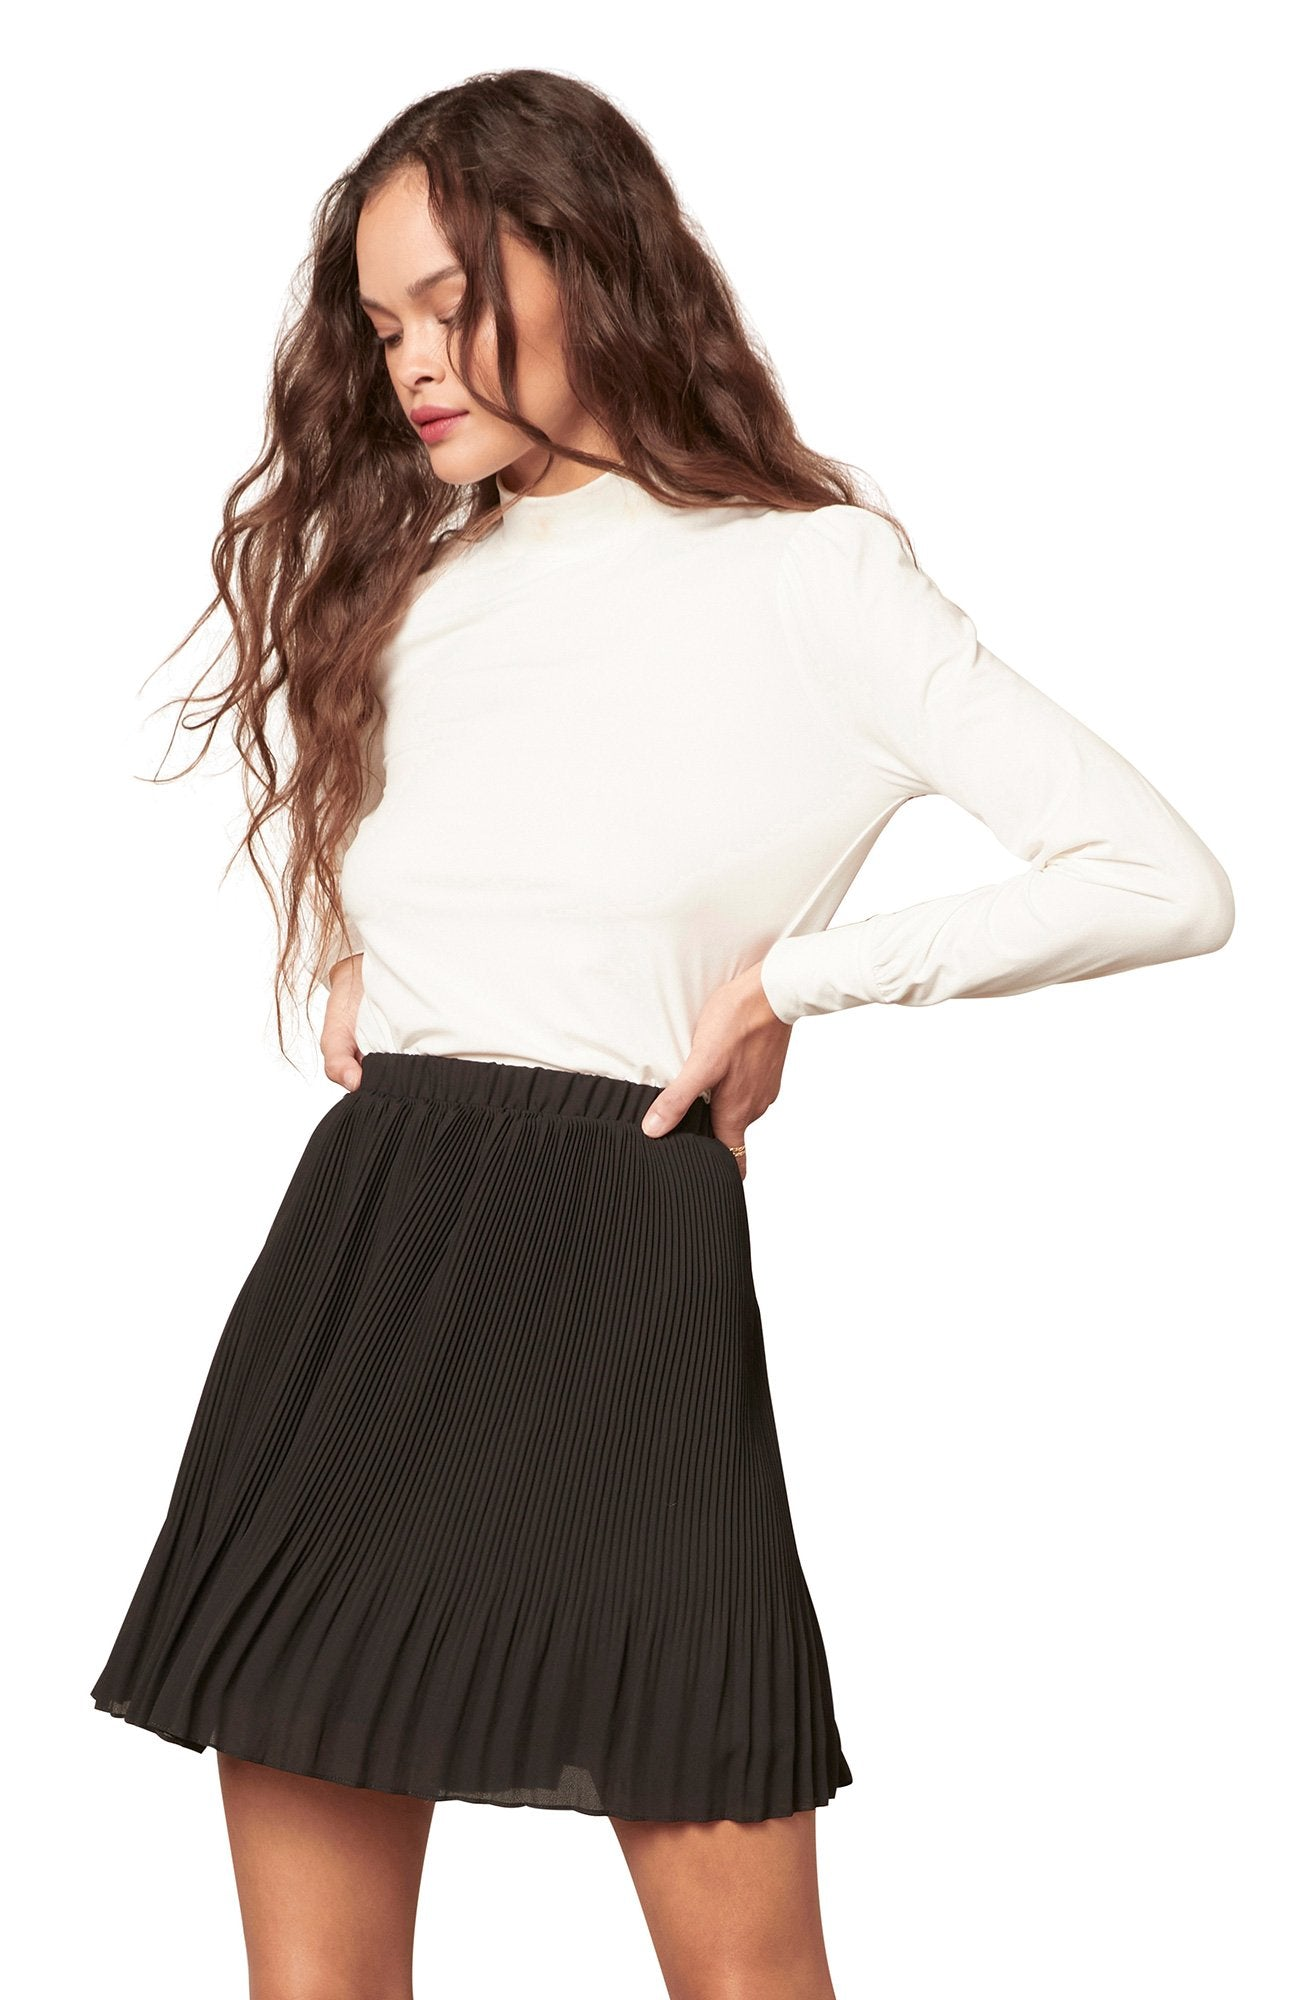 Life Com-Pleat Skirt